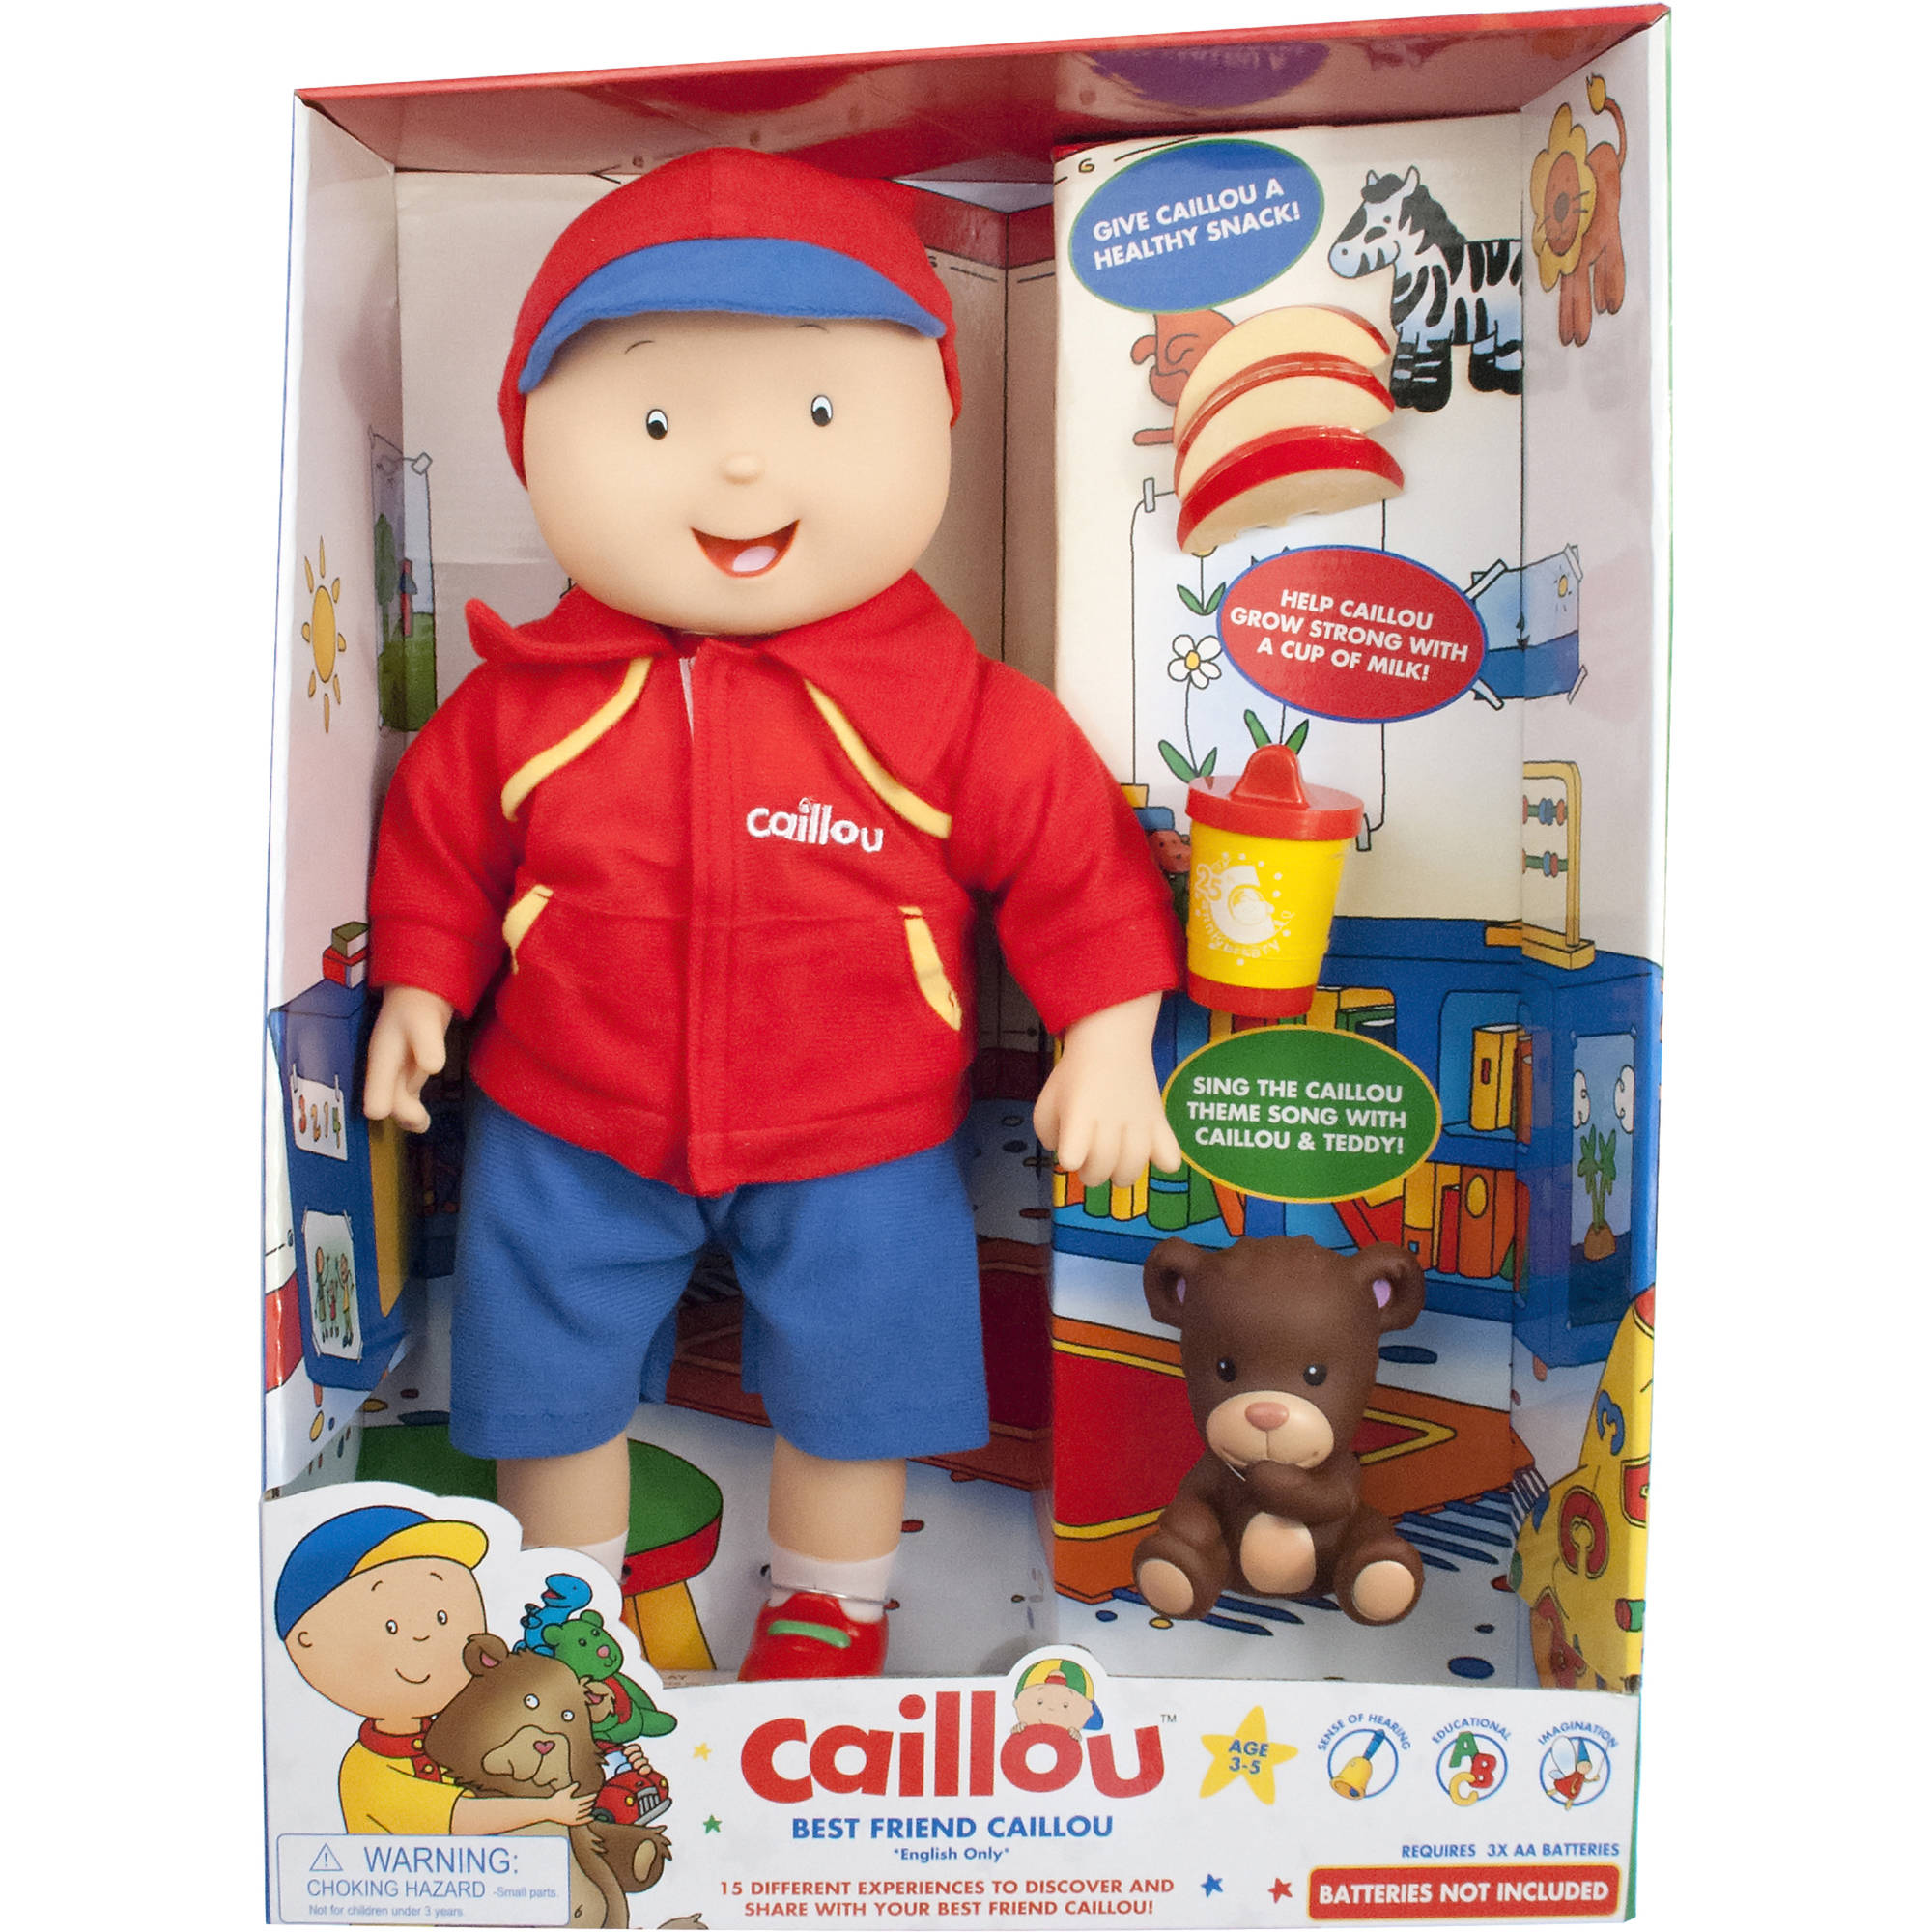 Caillou Best Friend Caillou Electronic Doll